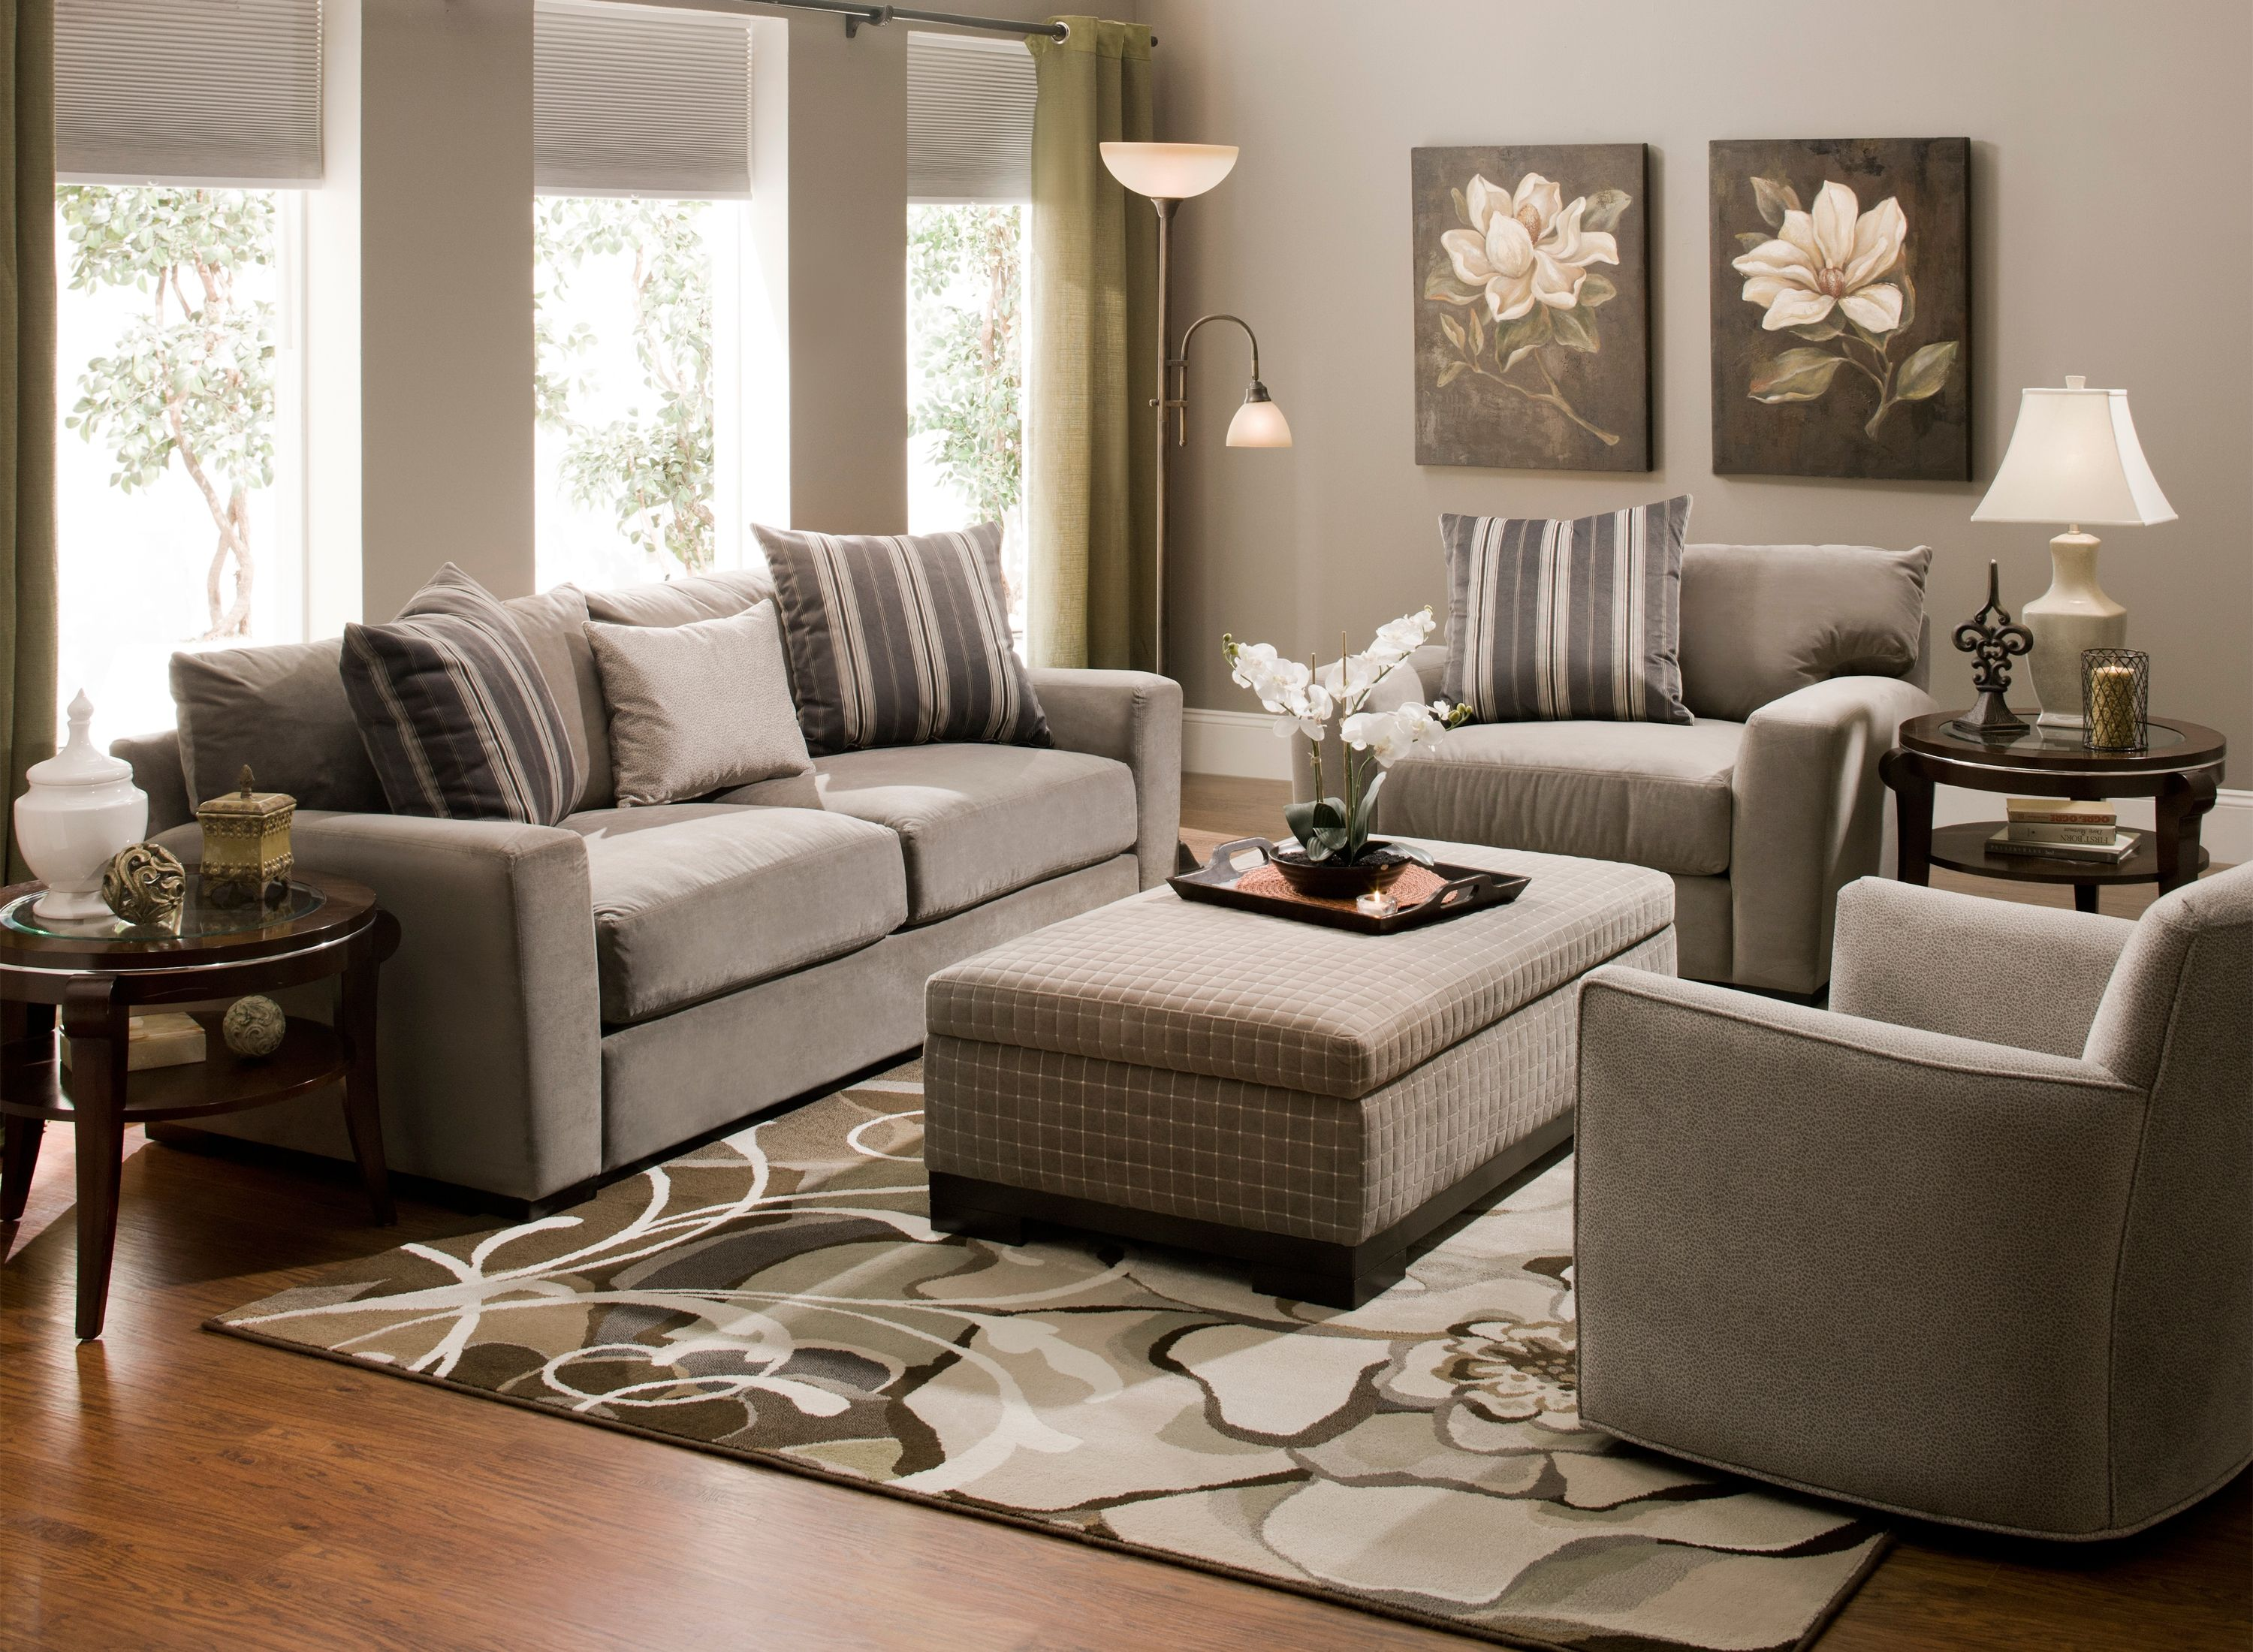 Admirable This Carlin Microfiber Sofa In Granite Will Make A Great Theyellowbook Wood Chair Design Ideas Theyellowbookinfo